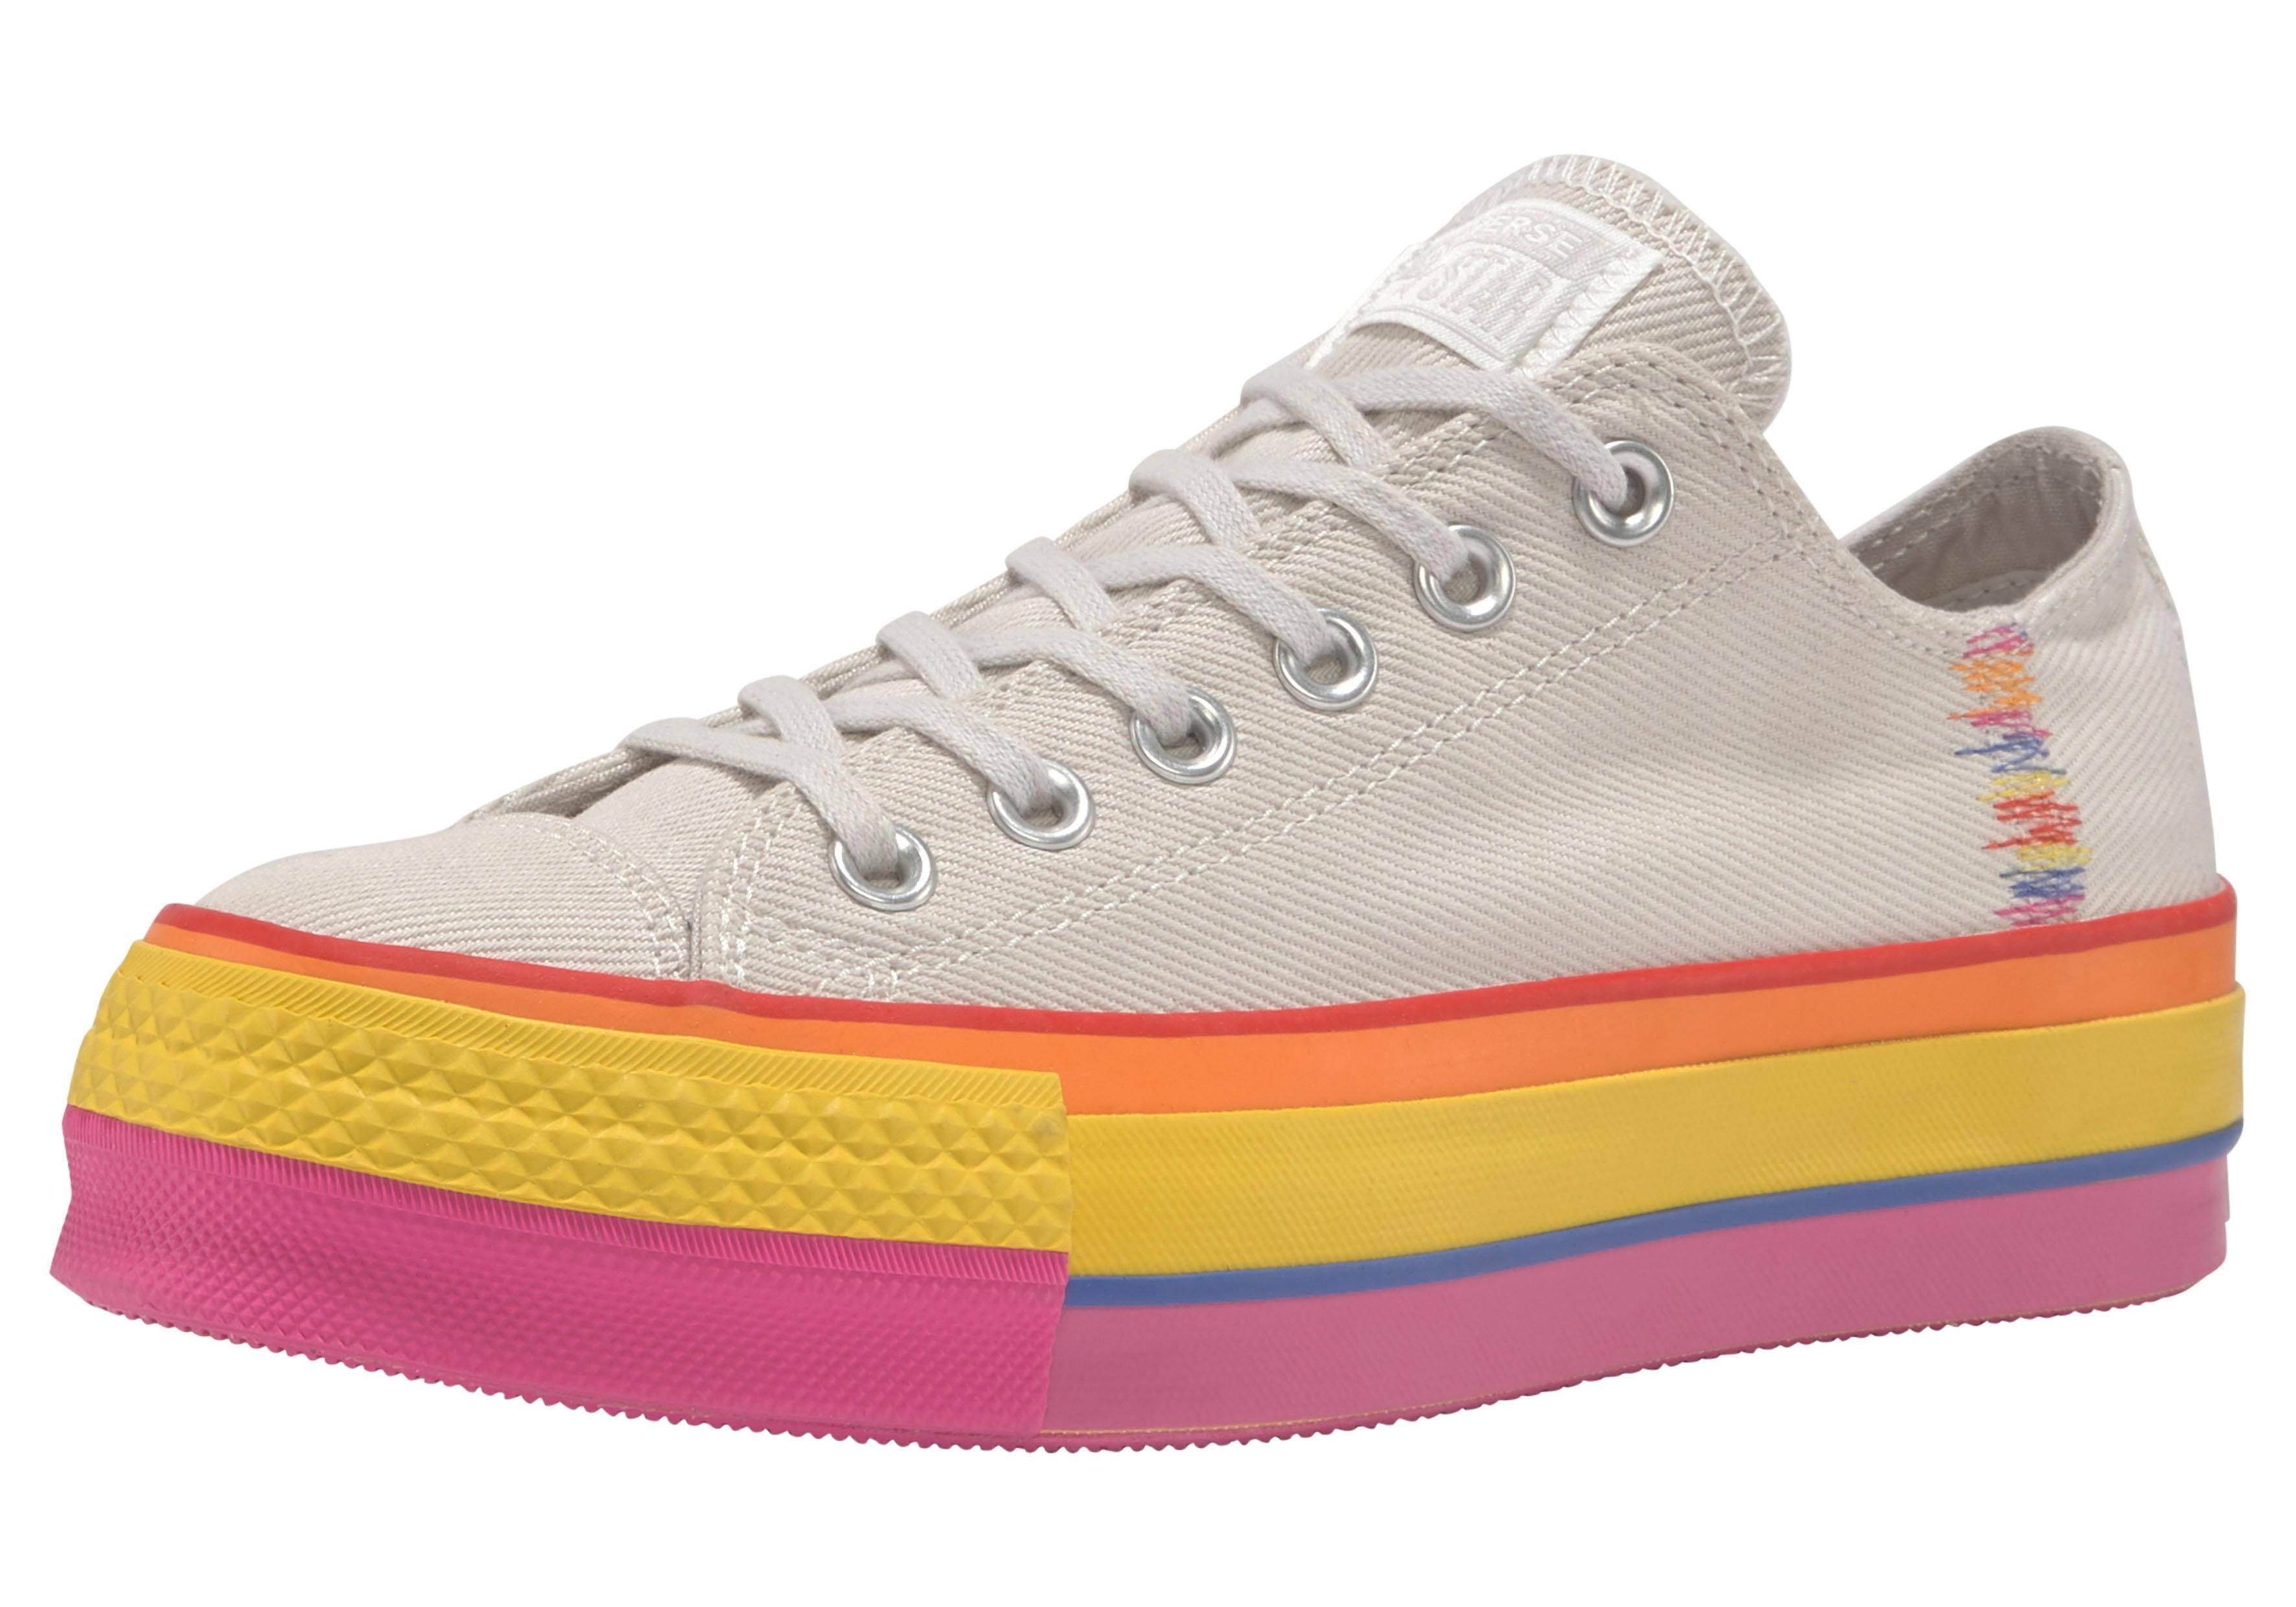 Converse »Chuck Taylor All Star Lift Rainbow (PRIDE Pack)« Plateausneaker online kaufen | OTTO